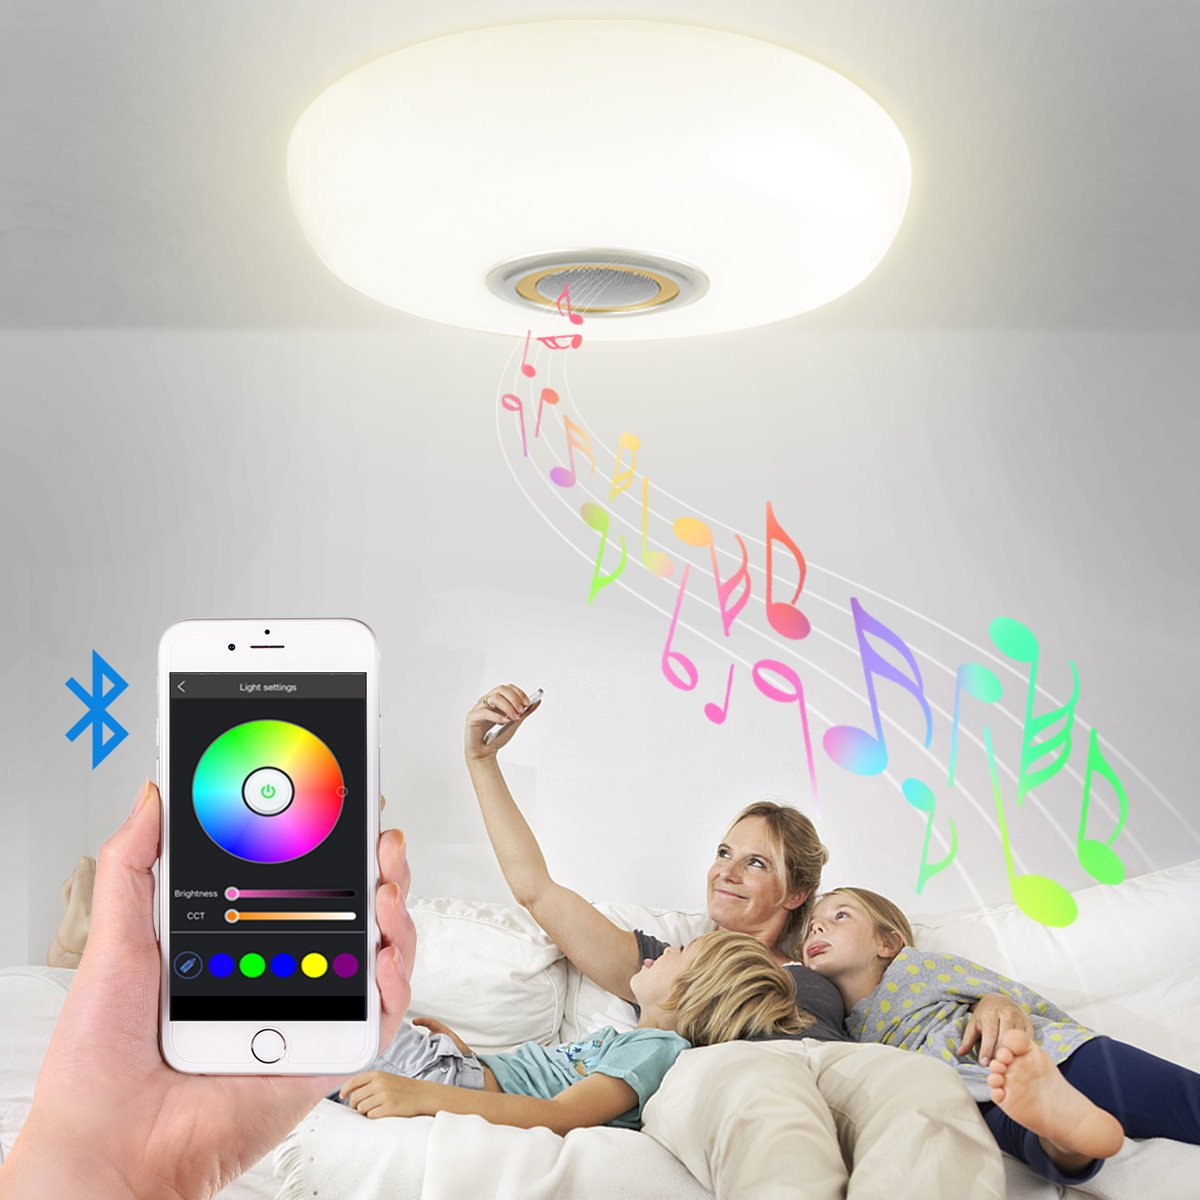 Led Music Ceiling Light with Bluetooth Speaker 20W, Modern Light Fixtures with RGB Color Changing,17.7inch 60W Home Party Light with Remote Control for Bedroom Living Room Dining Room Wedding(Gold) by BB SPEAKER